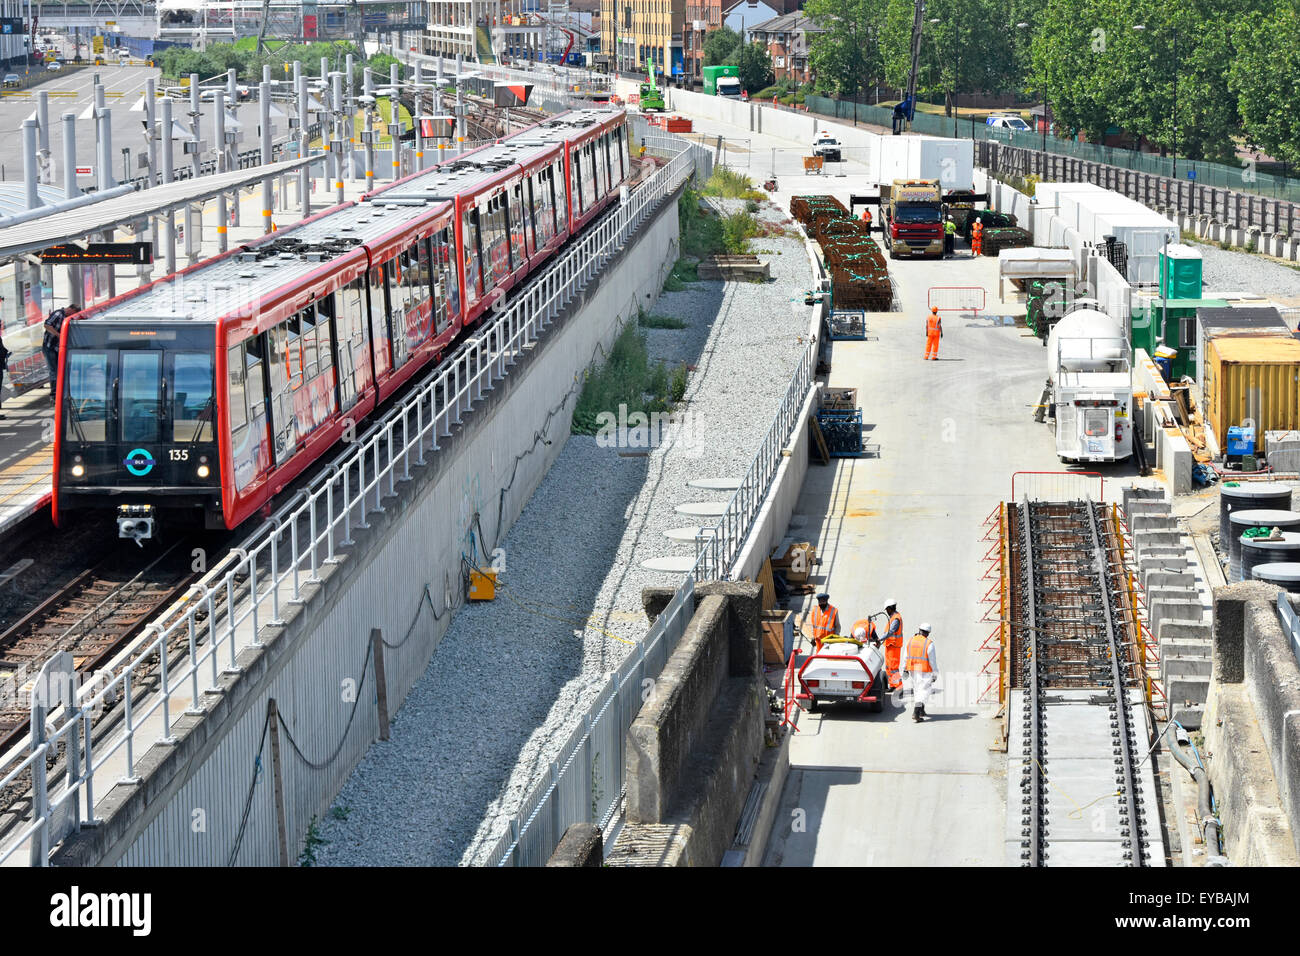 Crossrail train tracks being laid beside existing DLR train tracks on the Canary Wharf to  Abbey Wood branch line - Stock Image